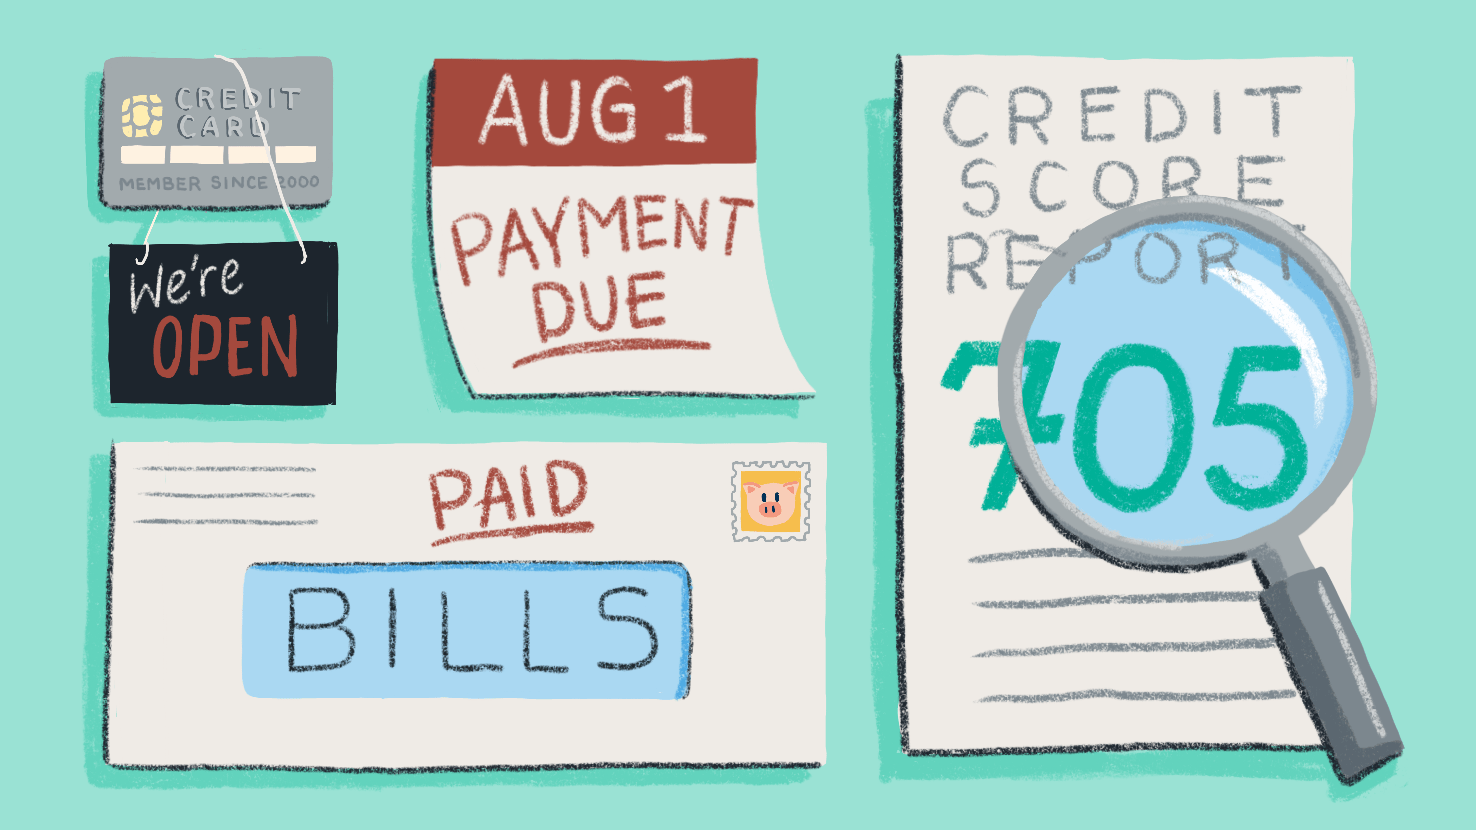 Illustration of a credit card, a bill, a calendar and a credit score report